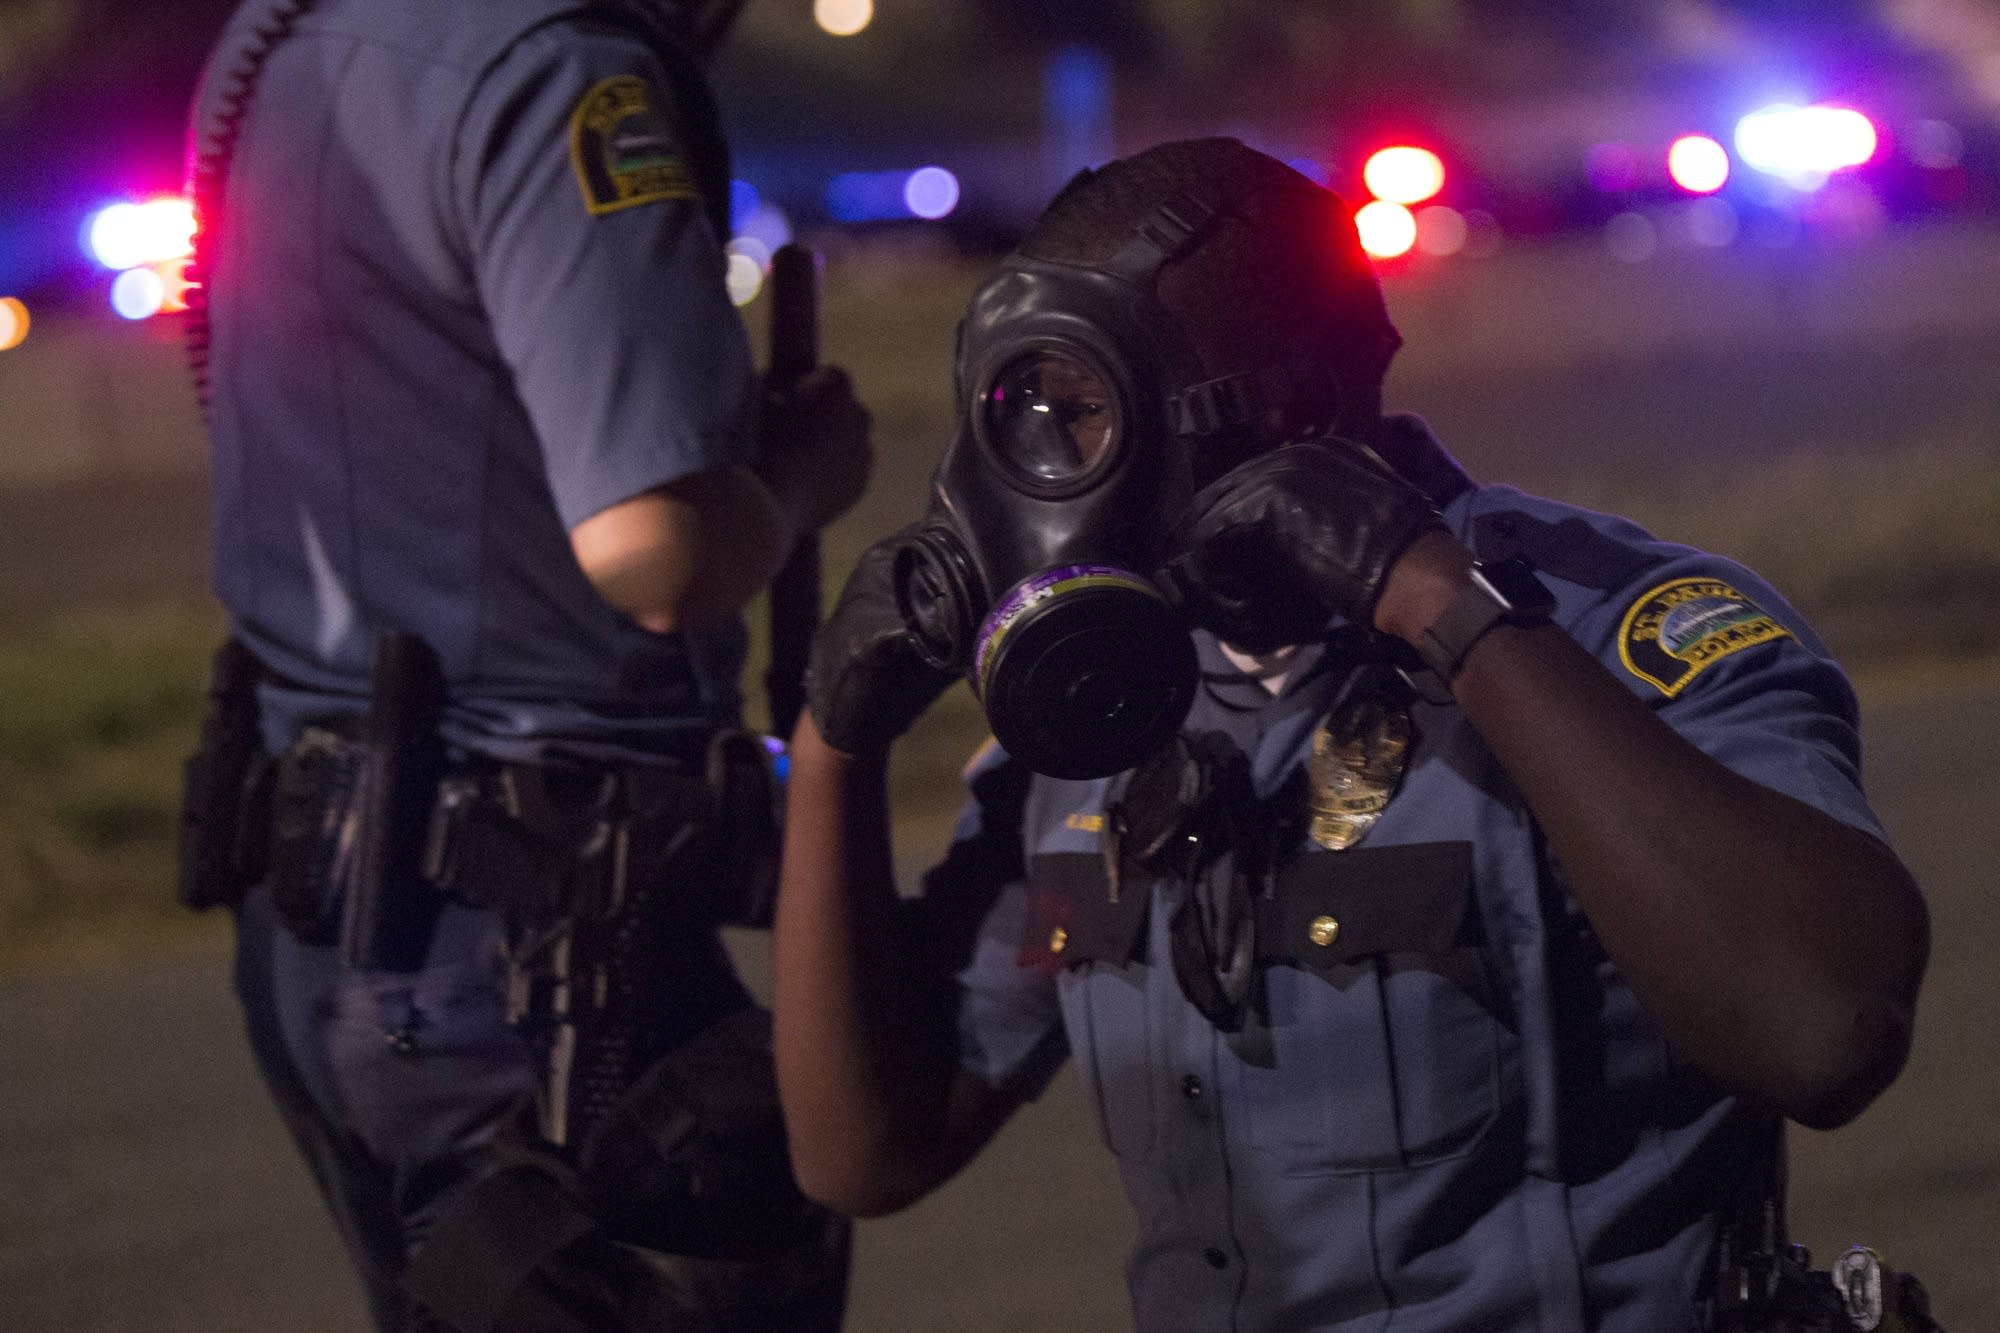 A St. Paul police officer puts on his gas mask.